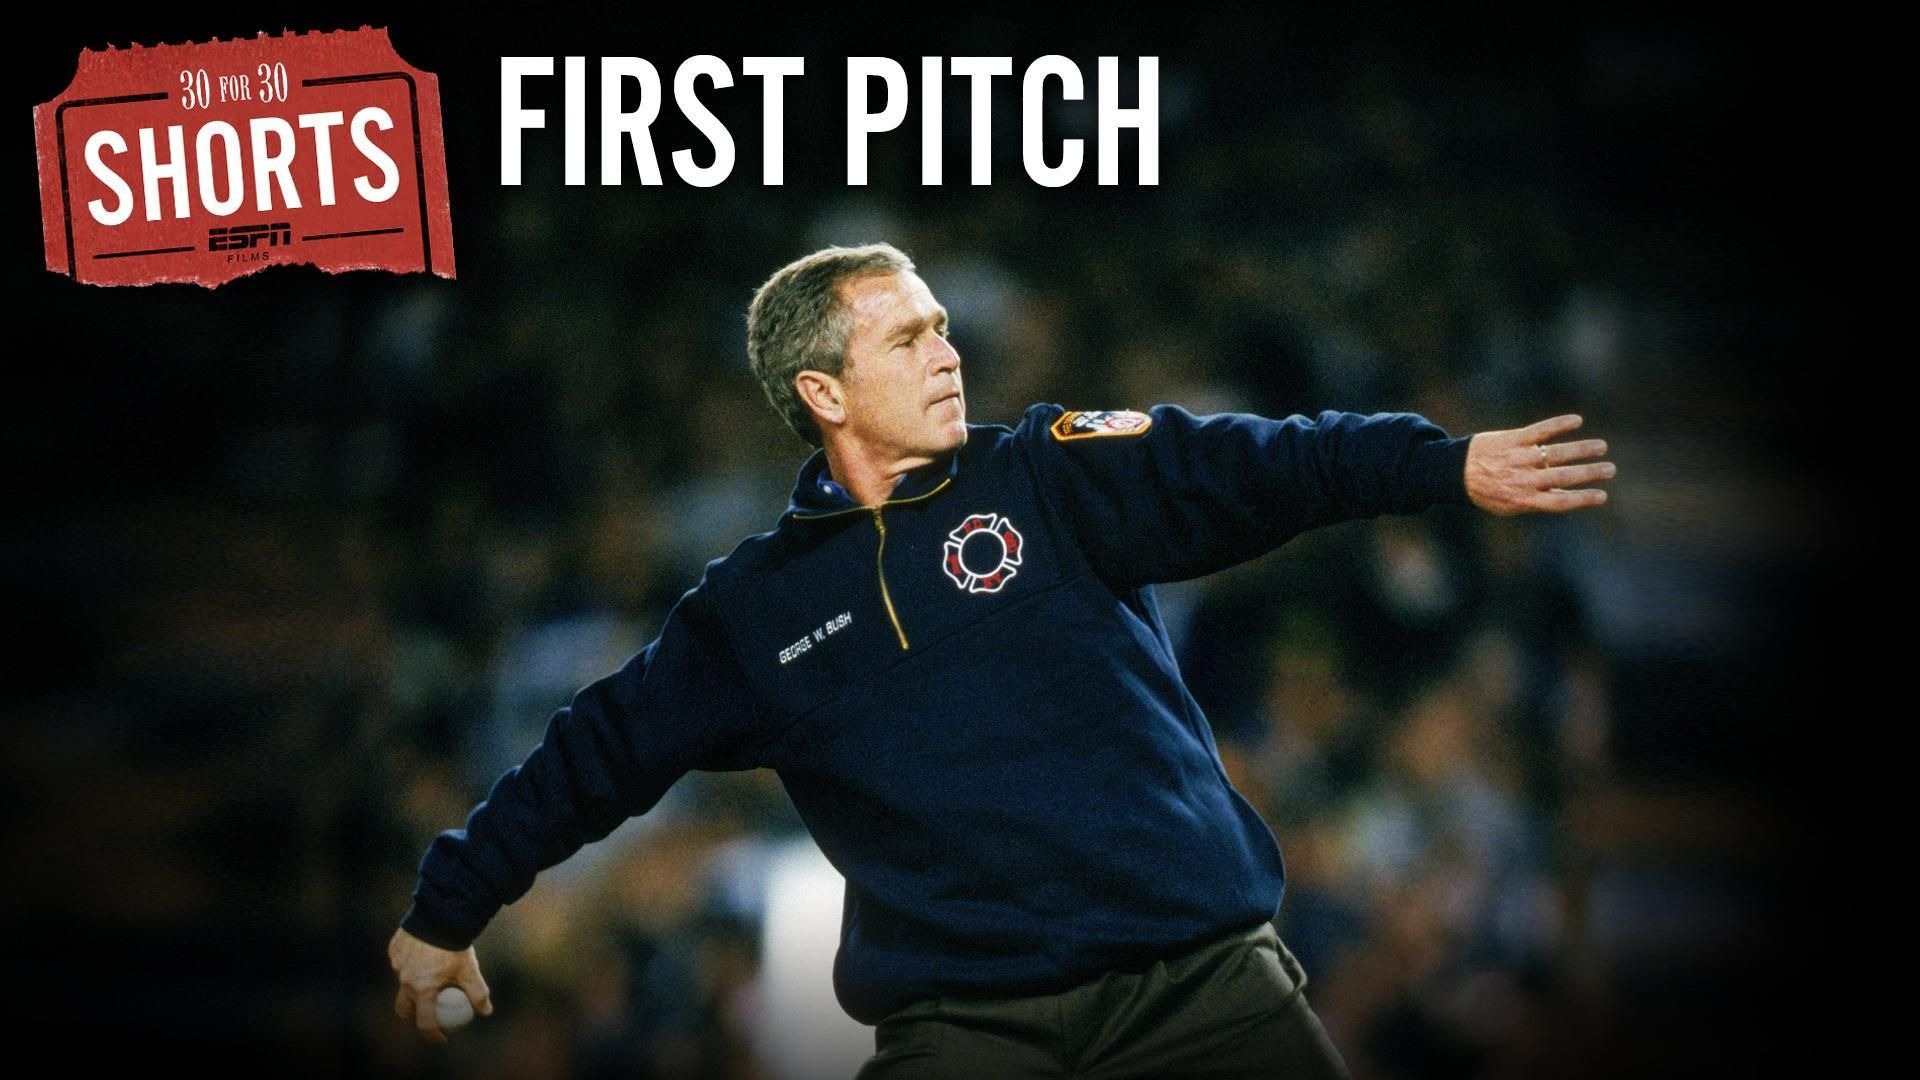 30 for 30 Shorts: First Pitch